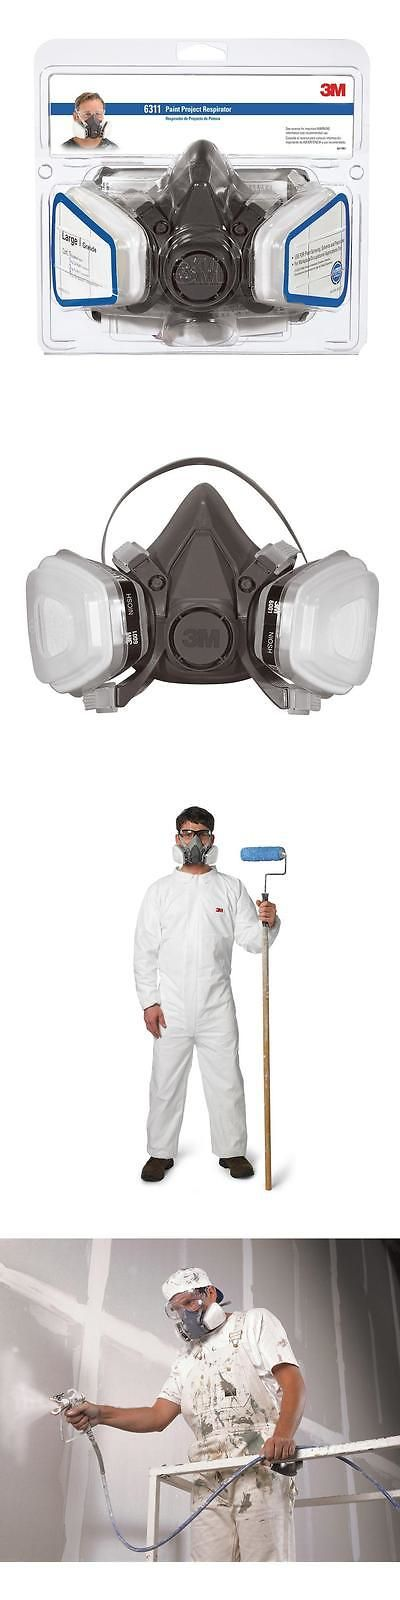 Masks Respirators and Helmets 43617: 3M Large Half Facepiece Spray Paint Respirator Safety Dust Mask Gas Vapor Filter -> BUY IT NOW ONLY: $51.92 on eBay!